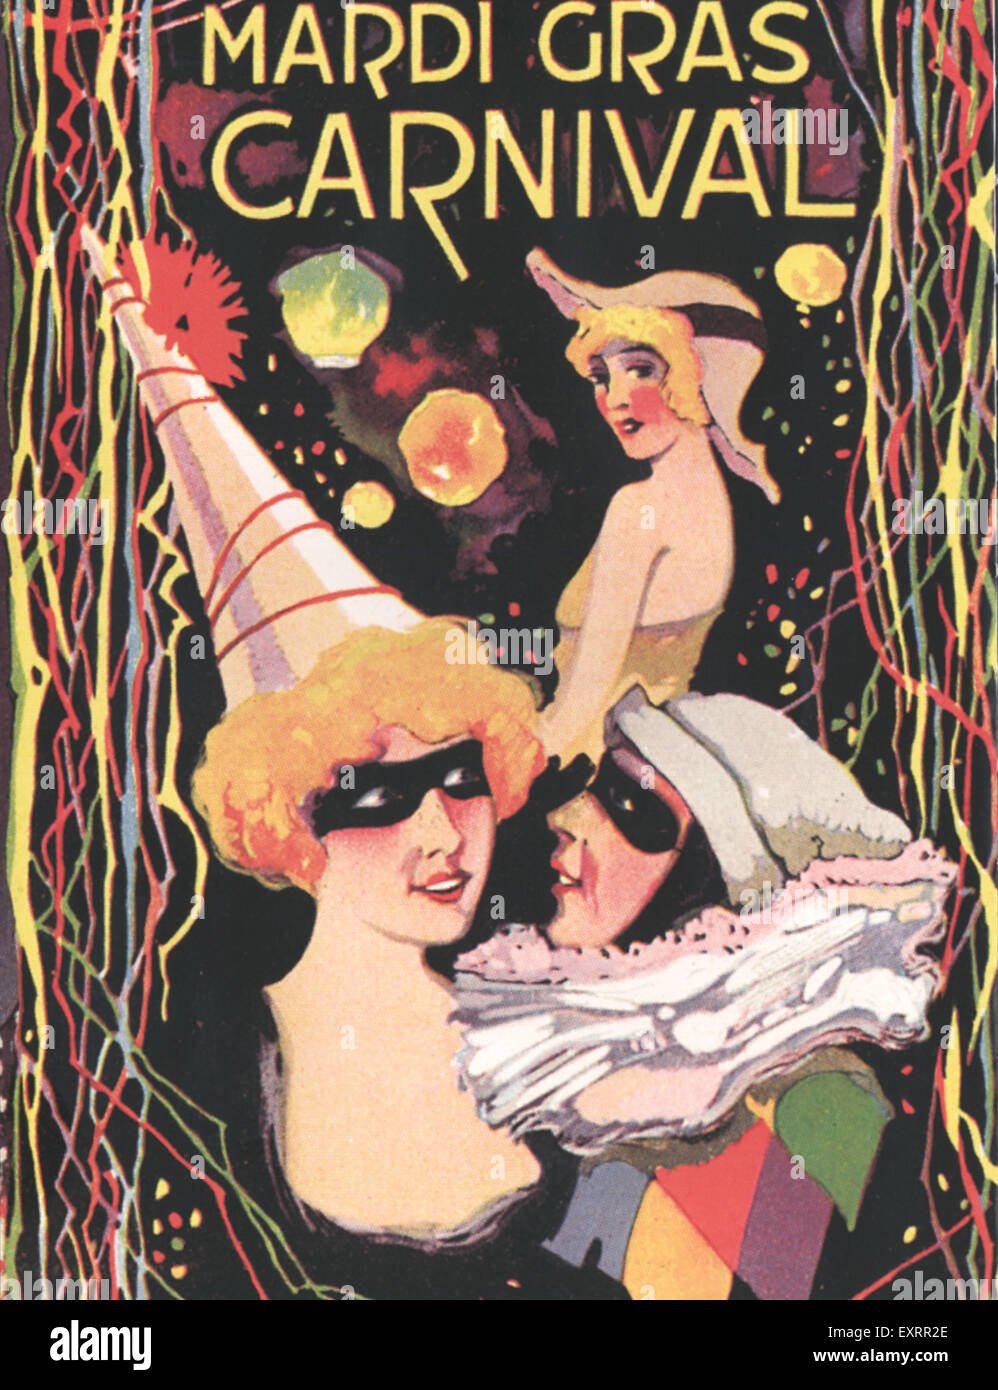 1920s USA Mardi Gras Magazine Advert - Stock Image